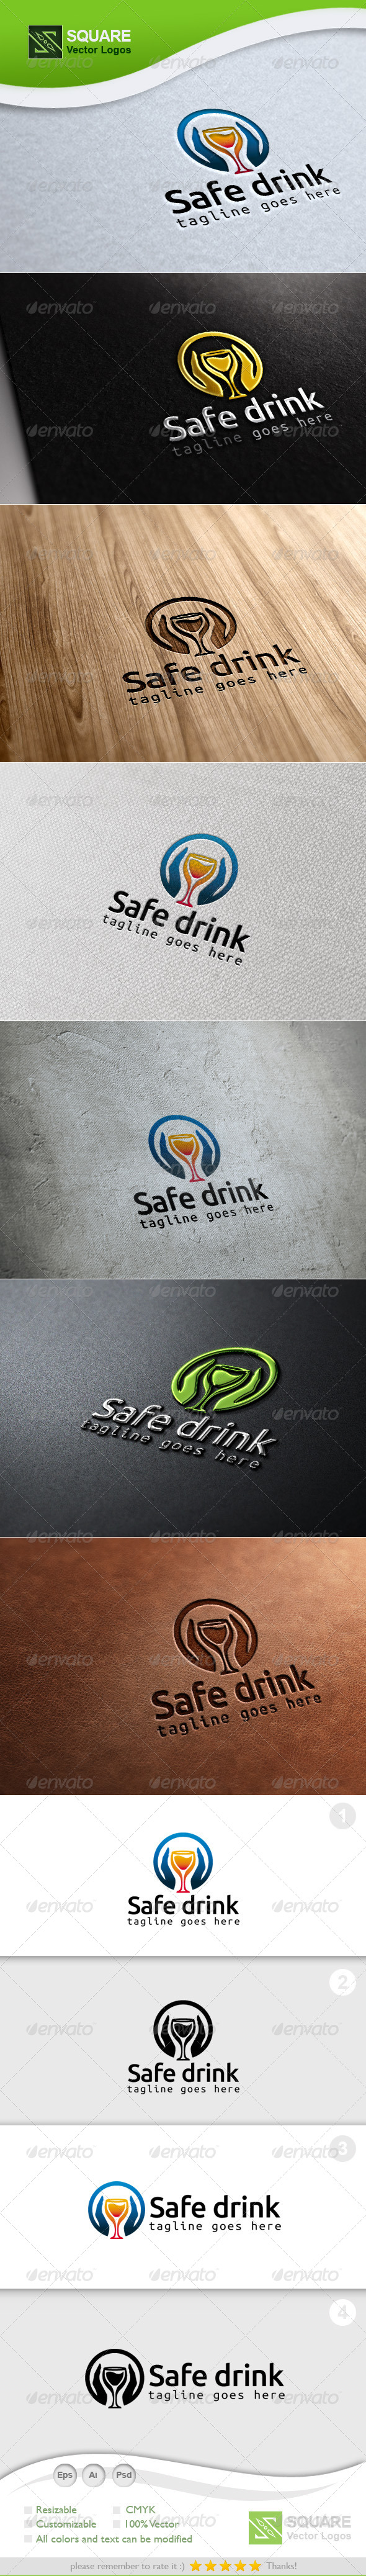 Hands, Drink Glass Logo Template - Symbols Logo Templates